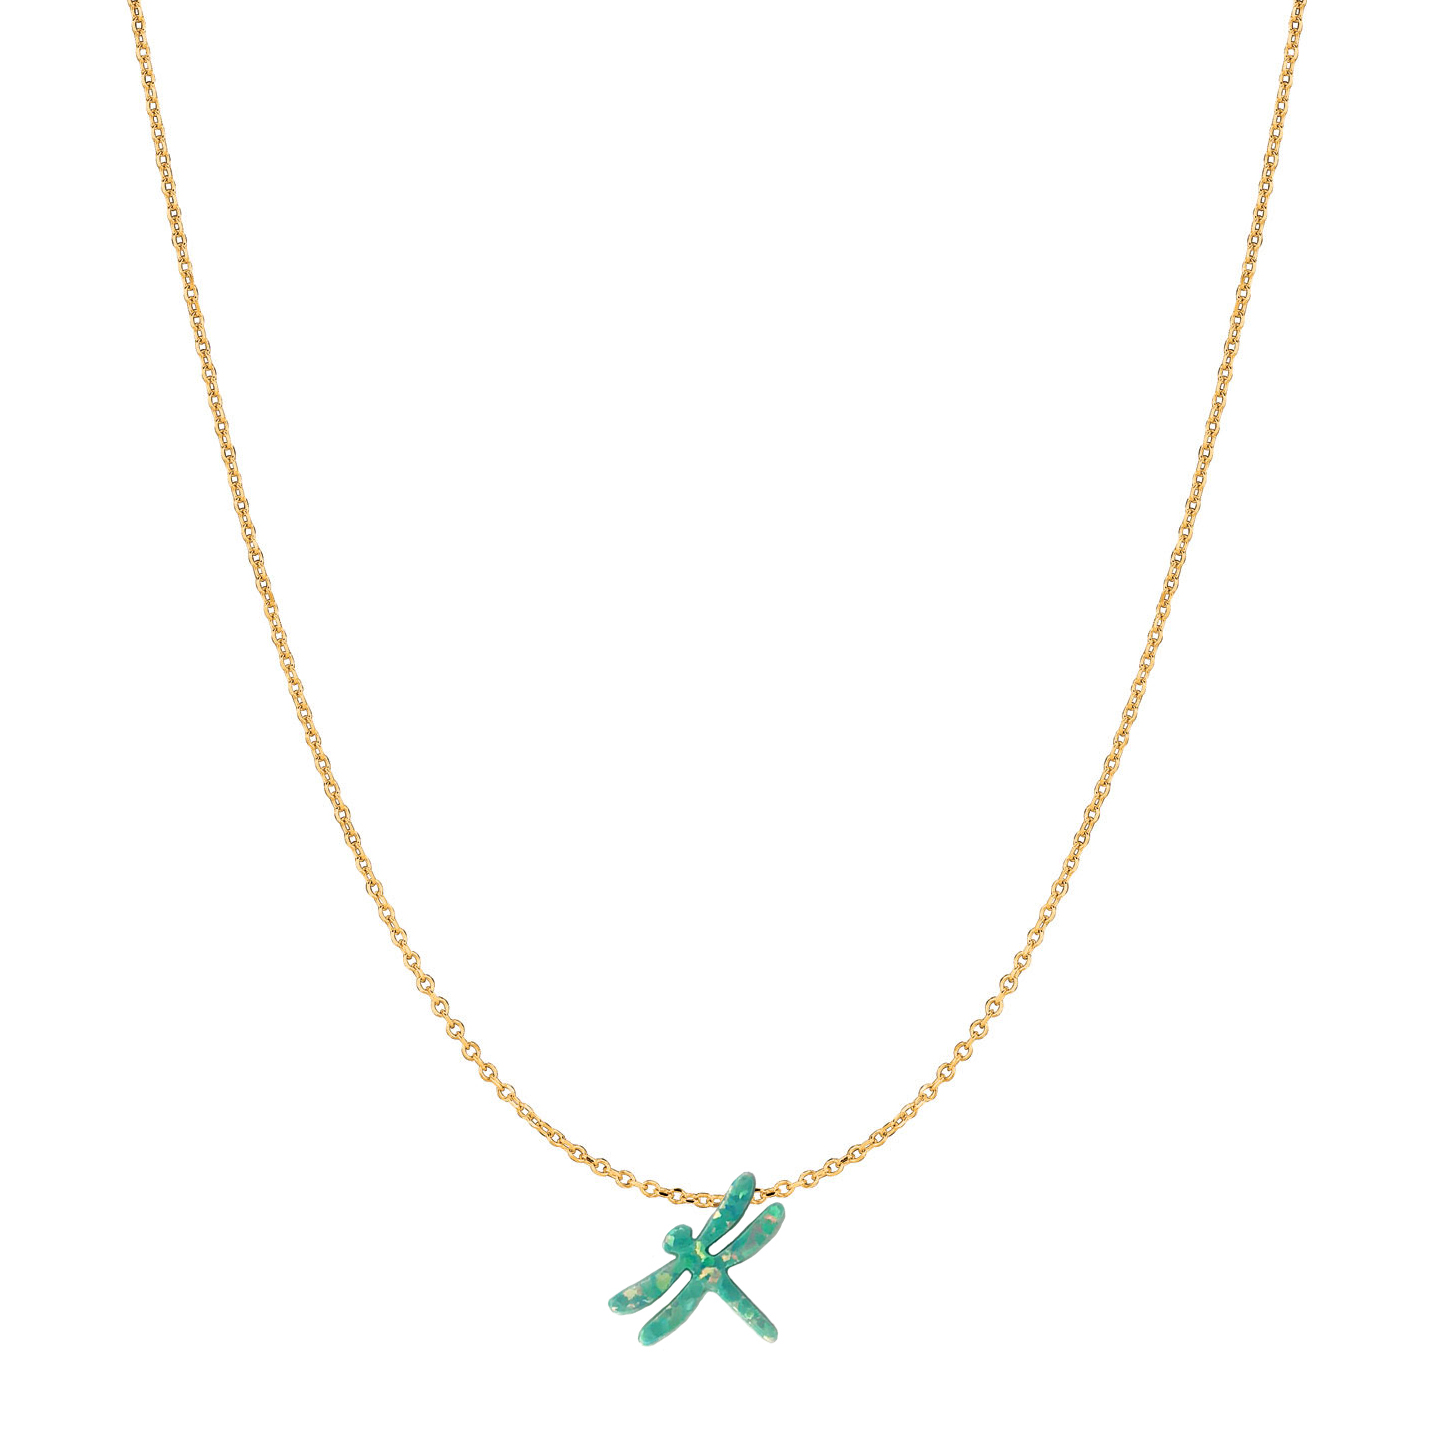 14 Karat Gold Moon Green Opal Dragonfly Necklace